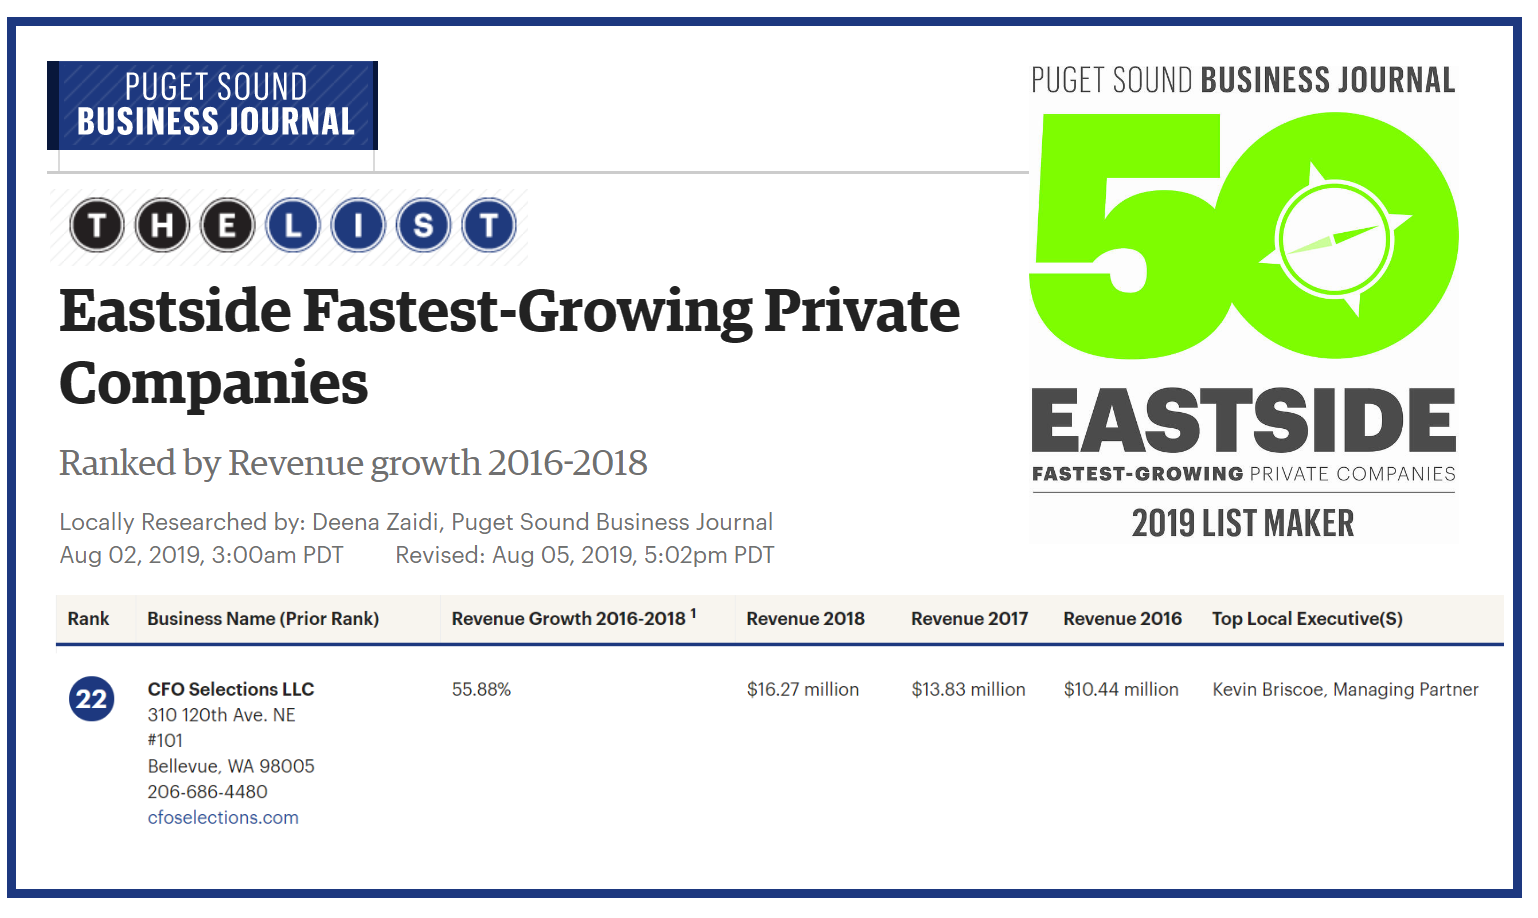 CFO Selections Included on Eastside Fastest-Growing Private Companies